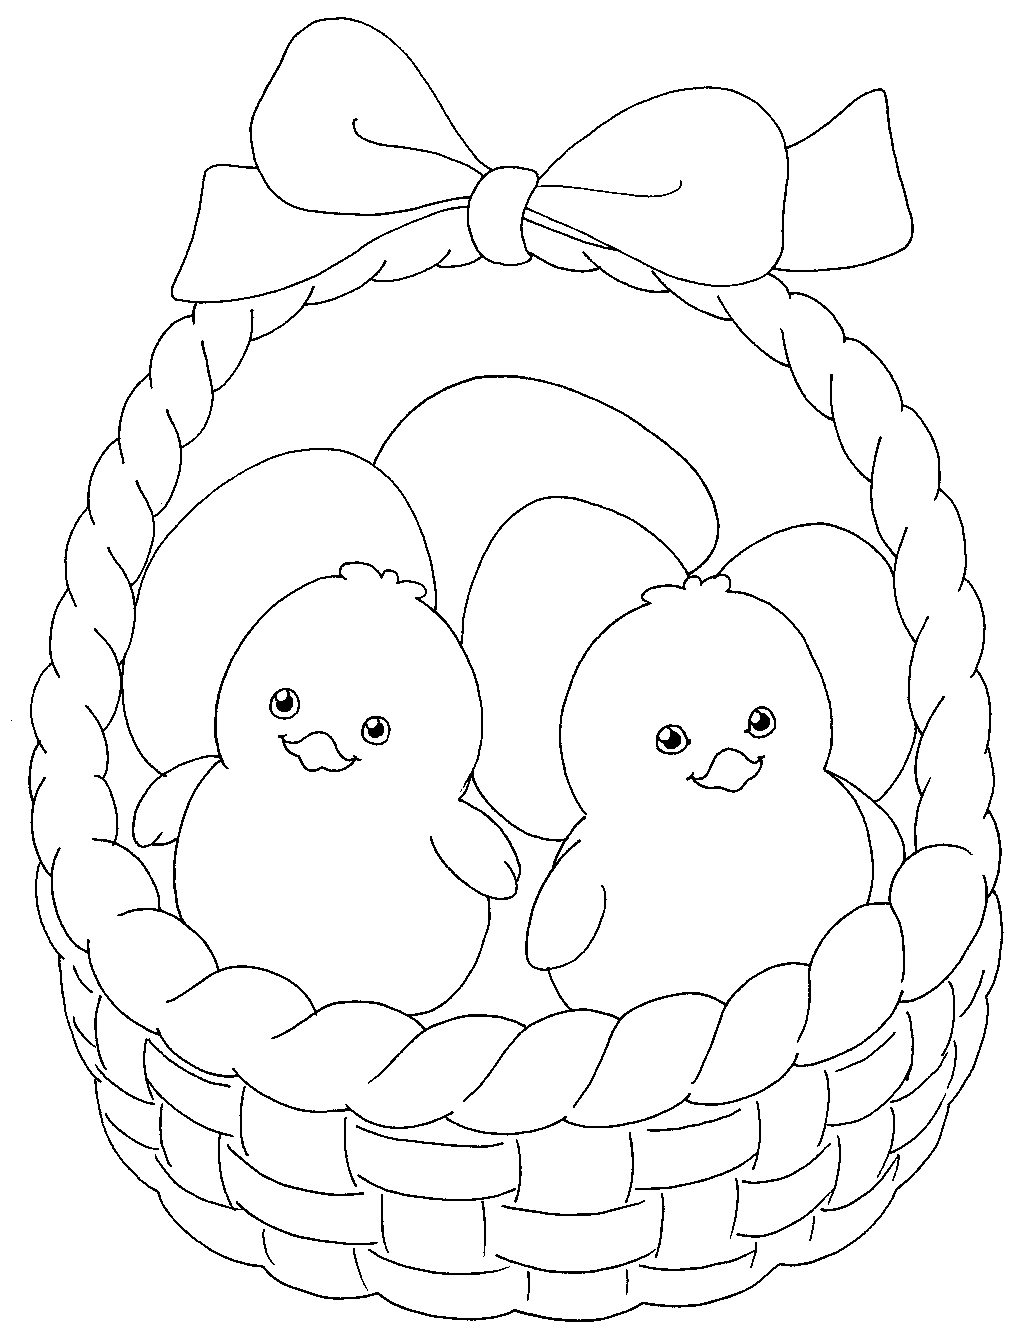 1026x1337 Here Are Two Very Cute Easter Chicks In A Basket For You To Print